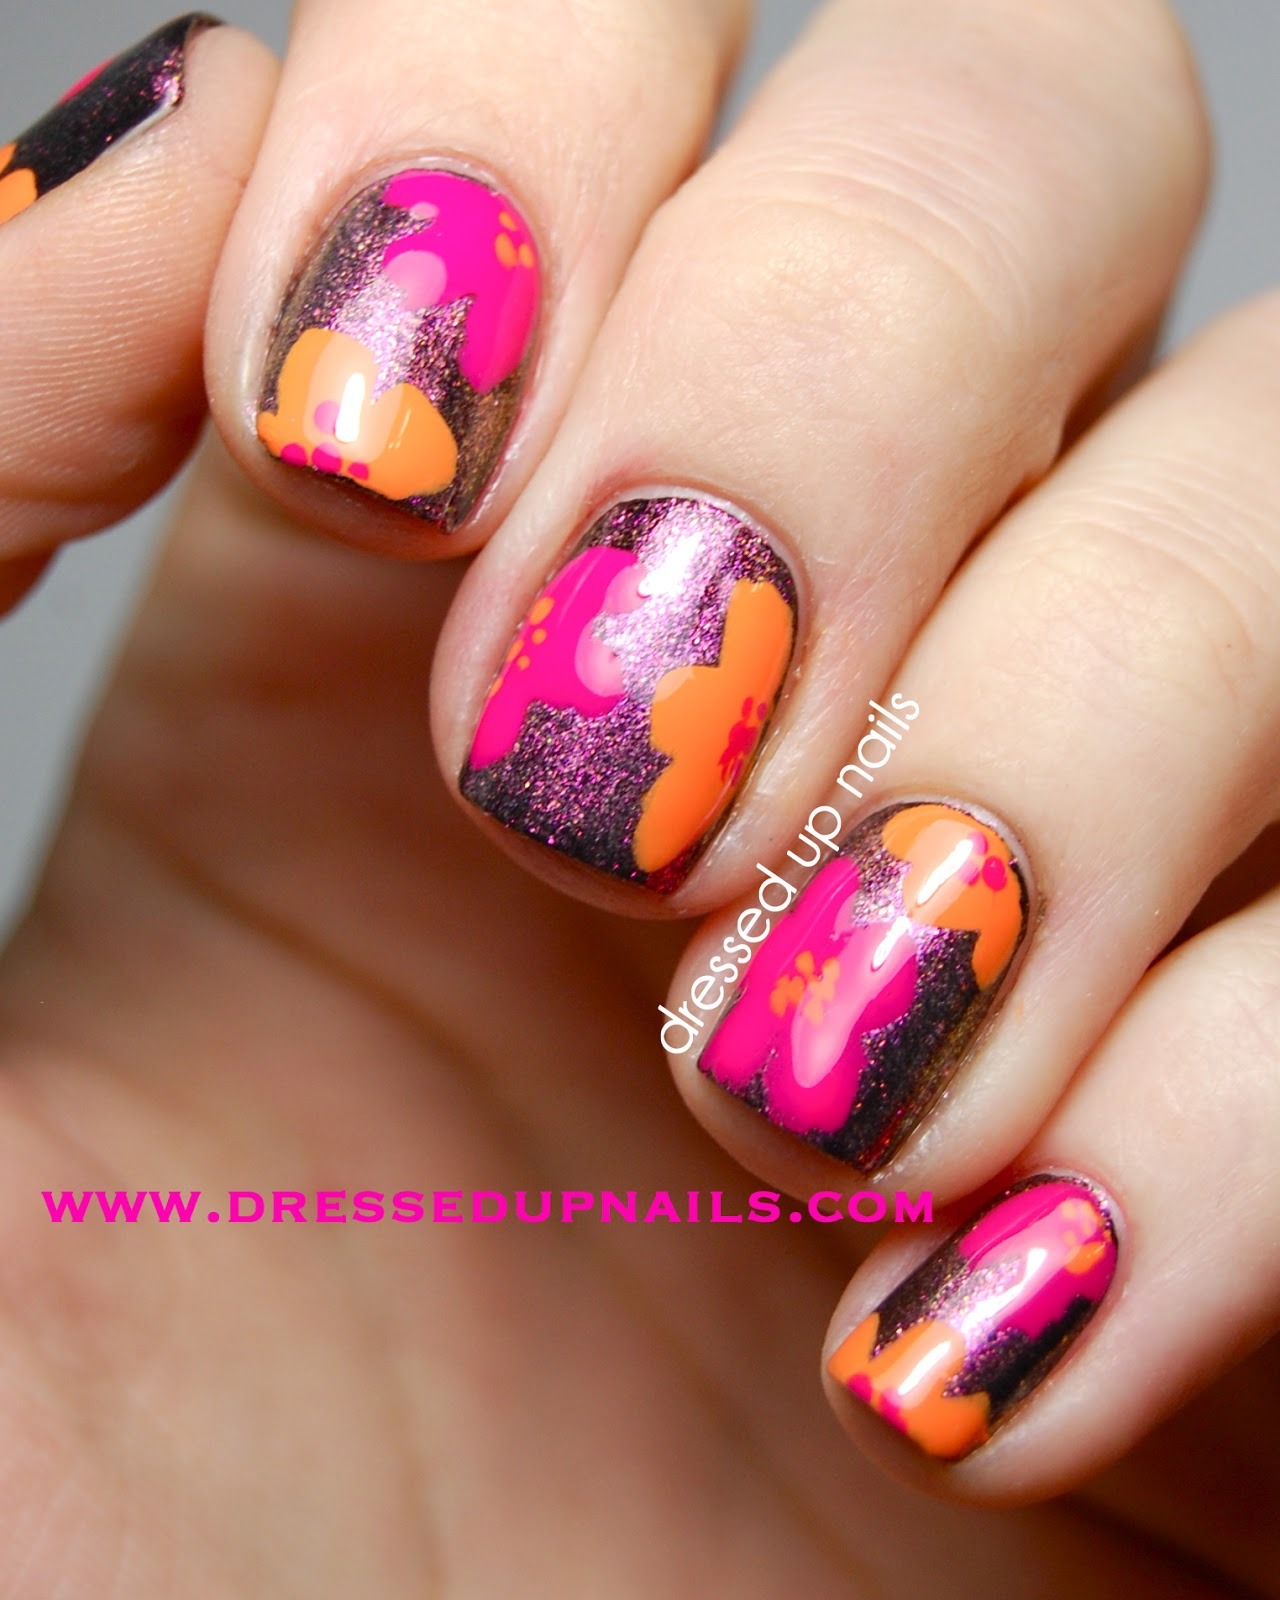 Dressed Up Nails: Floral nail art & swatches with Models Own